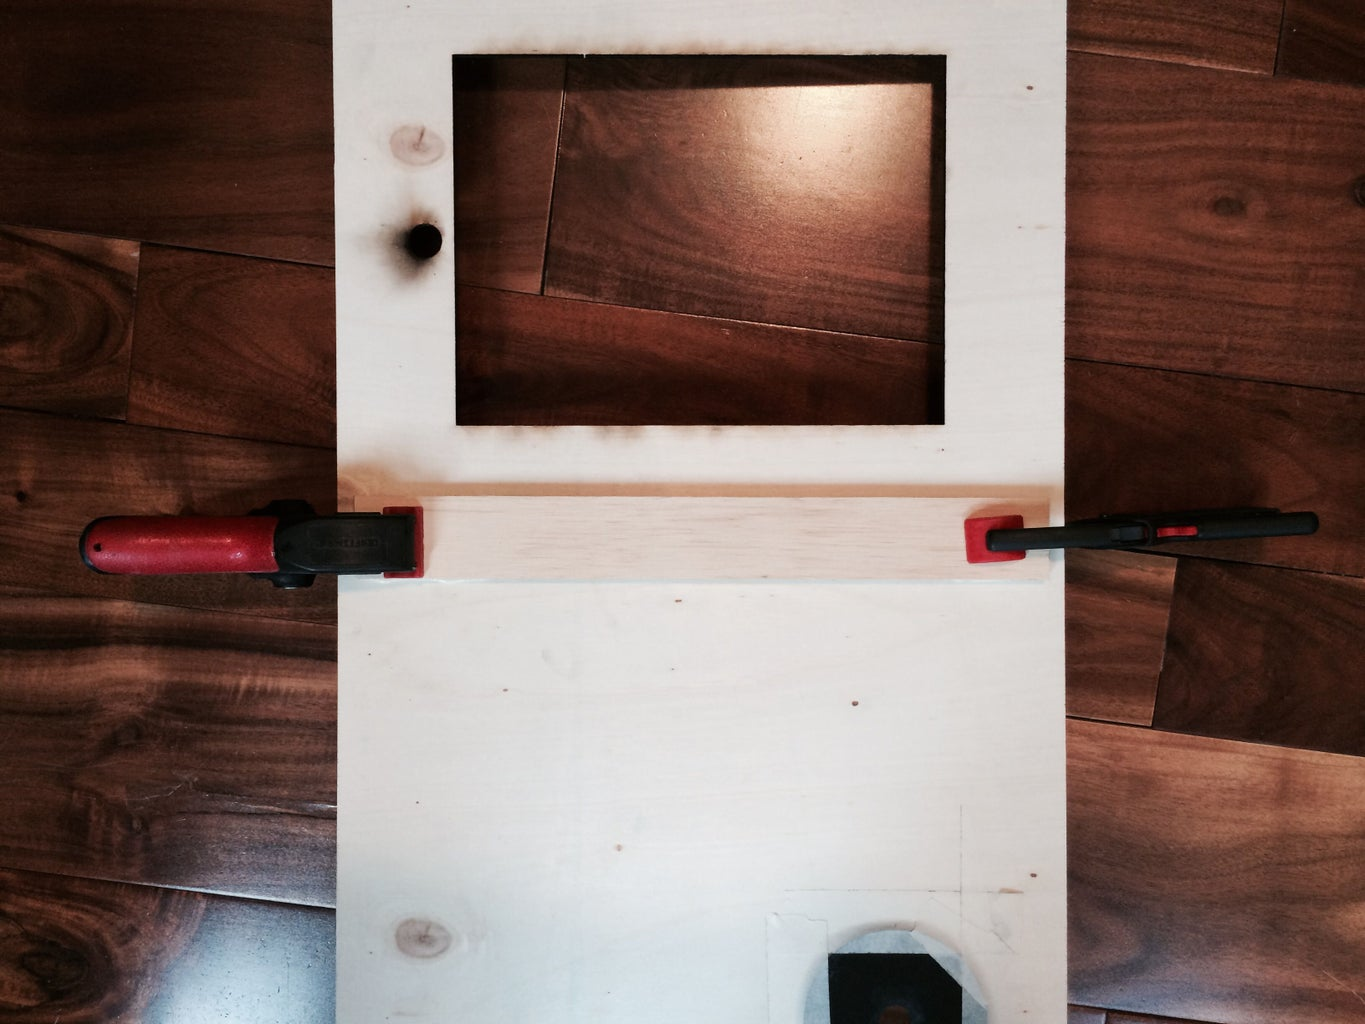 Installing the IPad Holder and Trigger Button Acrylic